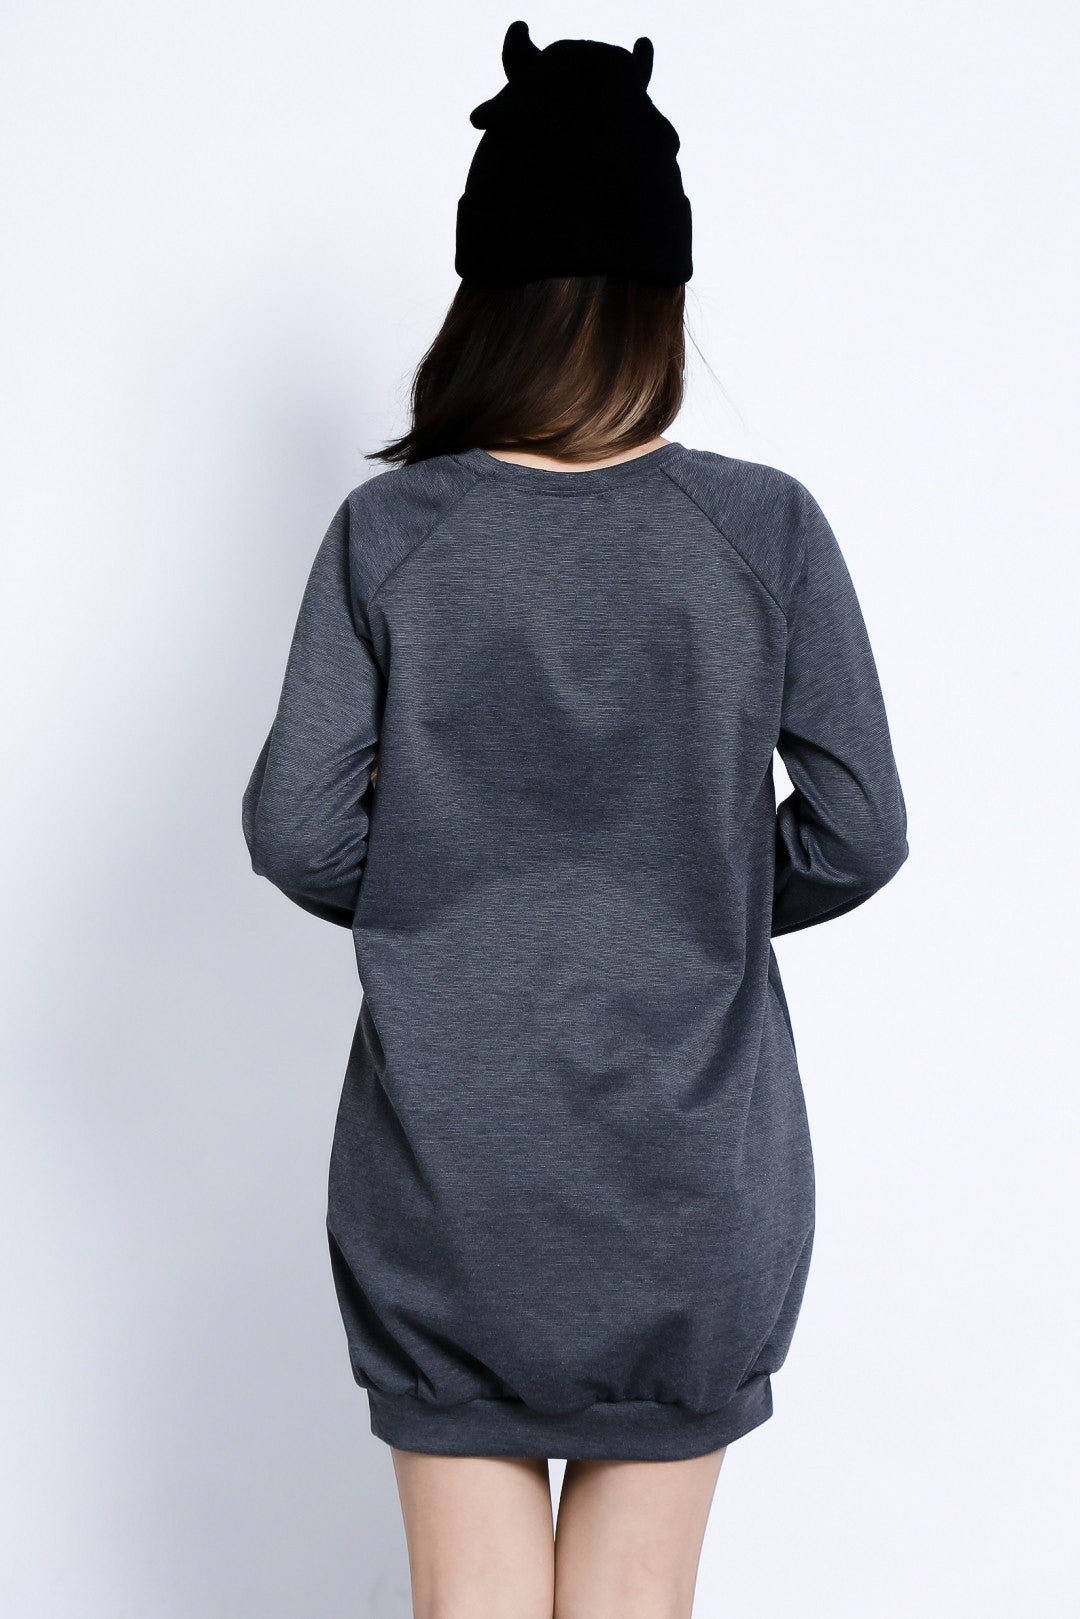 (RESTOCKED) MEOW PULLOVER DRESS IN GREY - TOPAZETTE